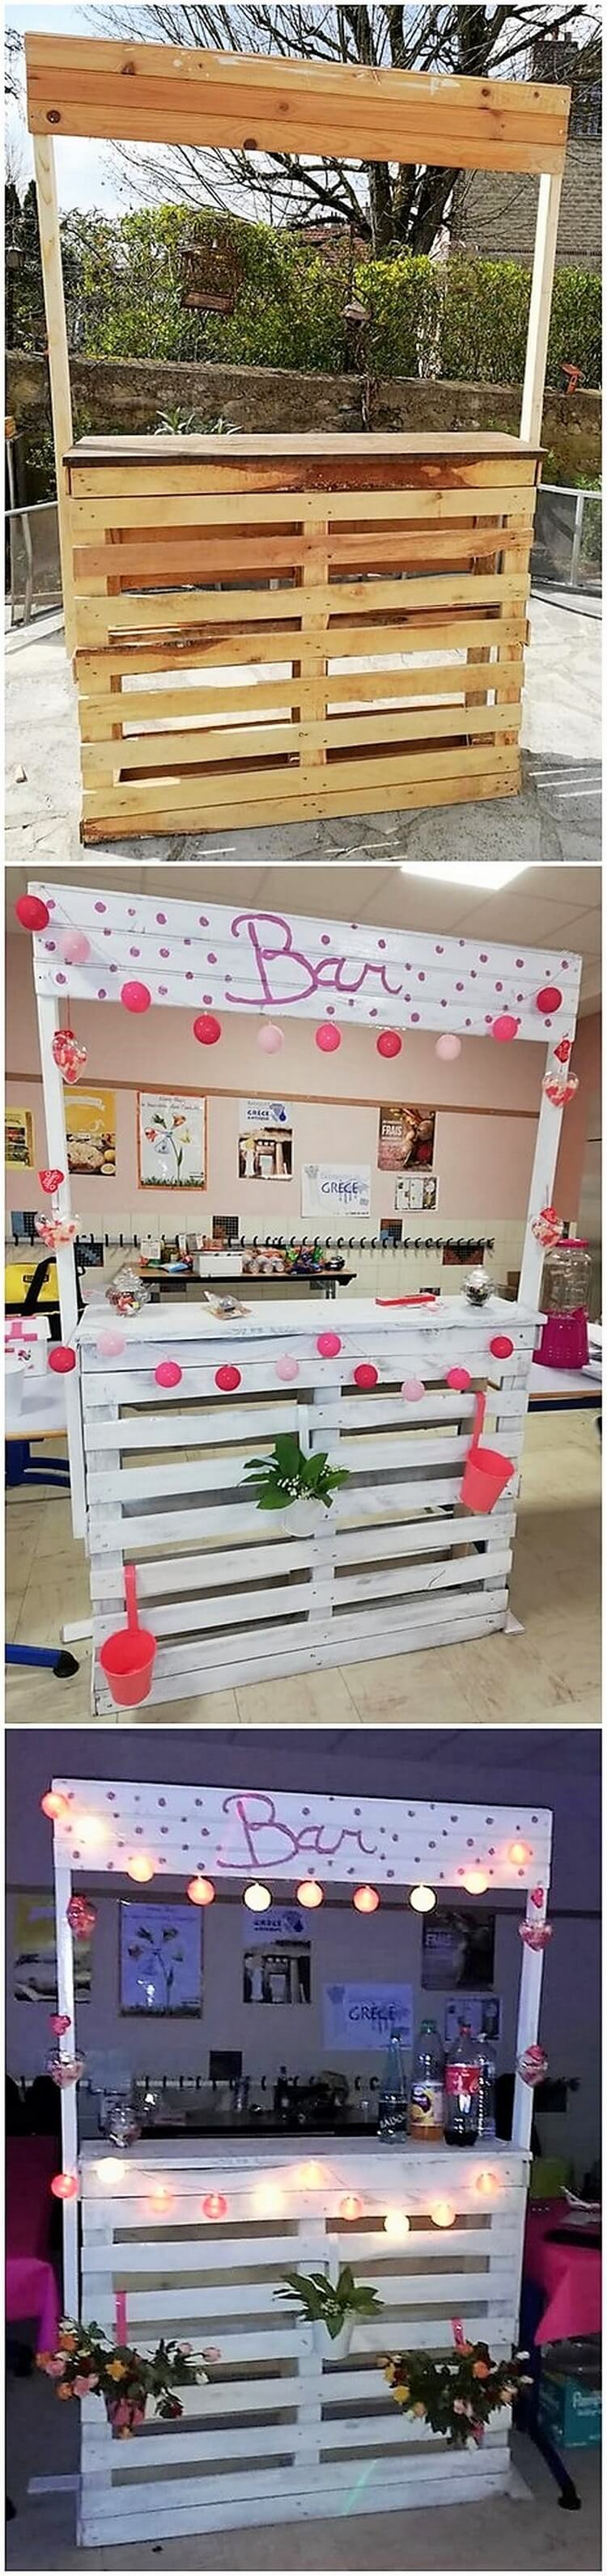 Pallet Bar Counter Table